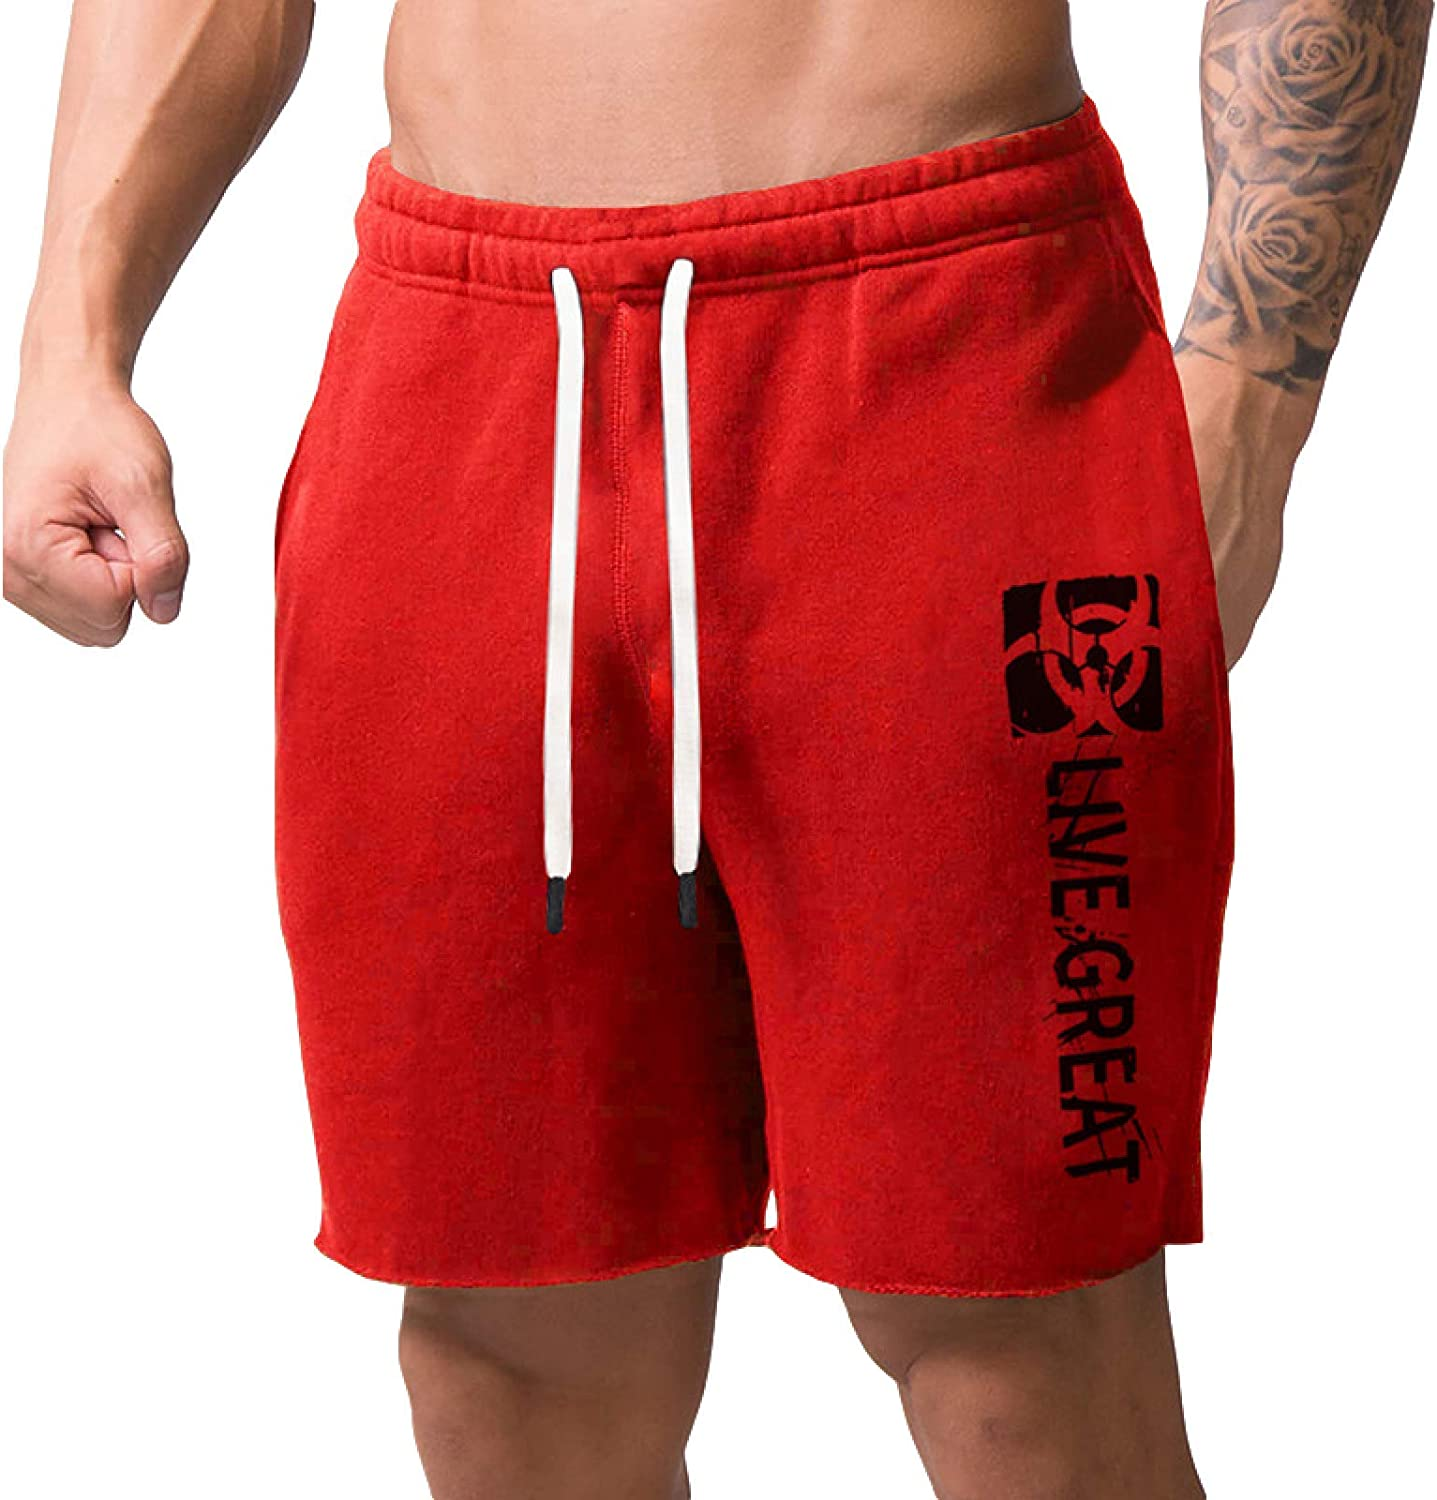 Men's Fitness Shorts Fashion Mid Waisted Loose Large Size Comfortable